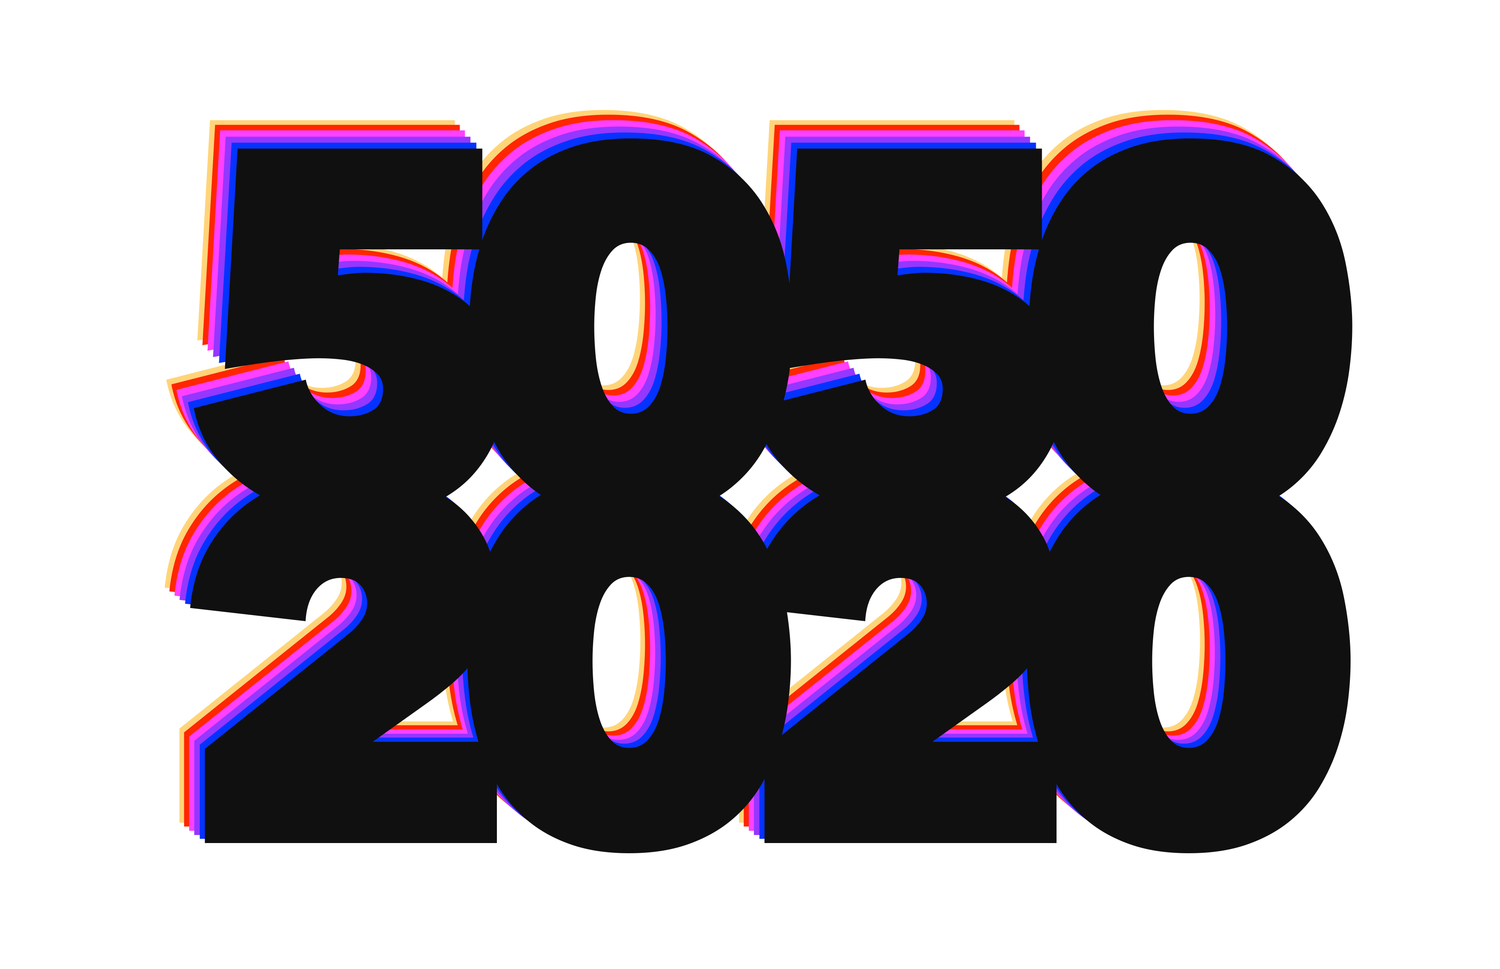 50/50 by 2020